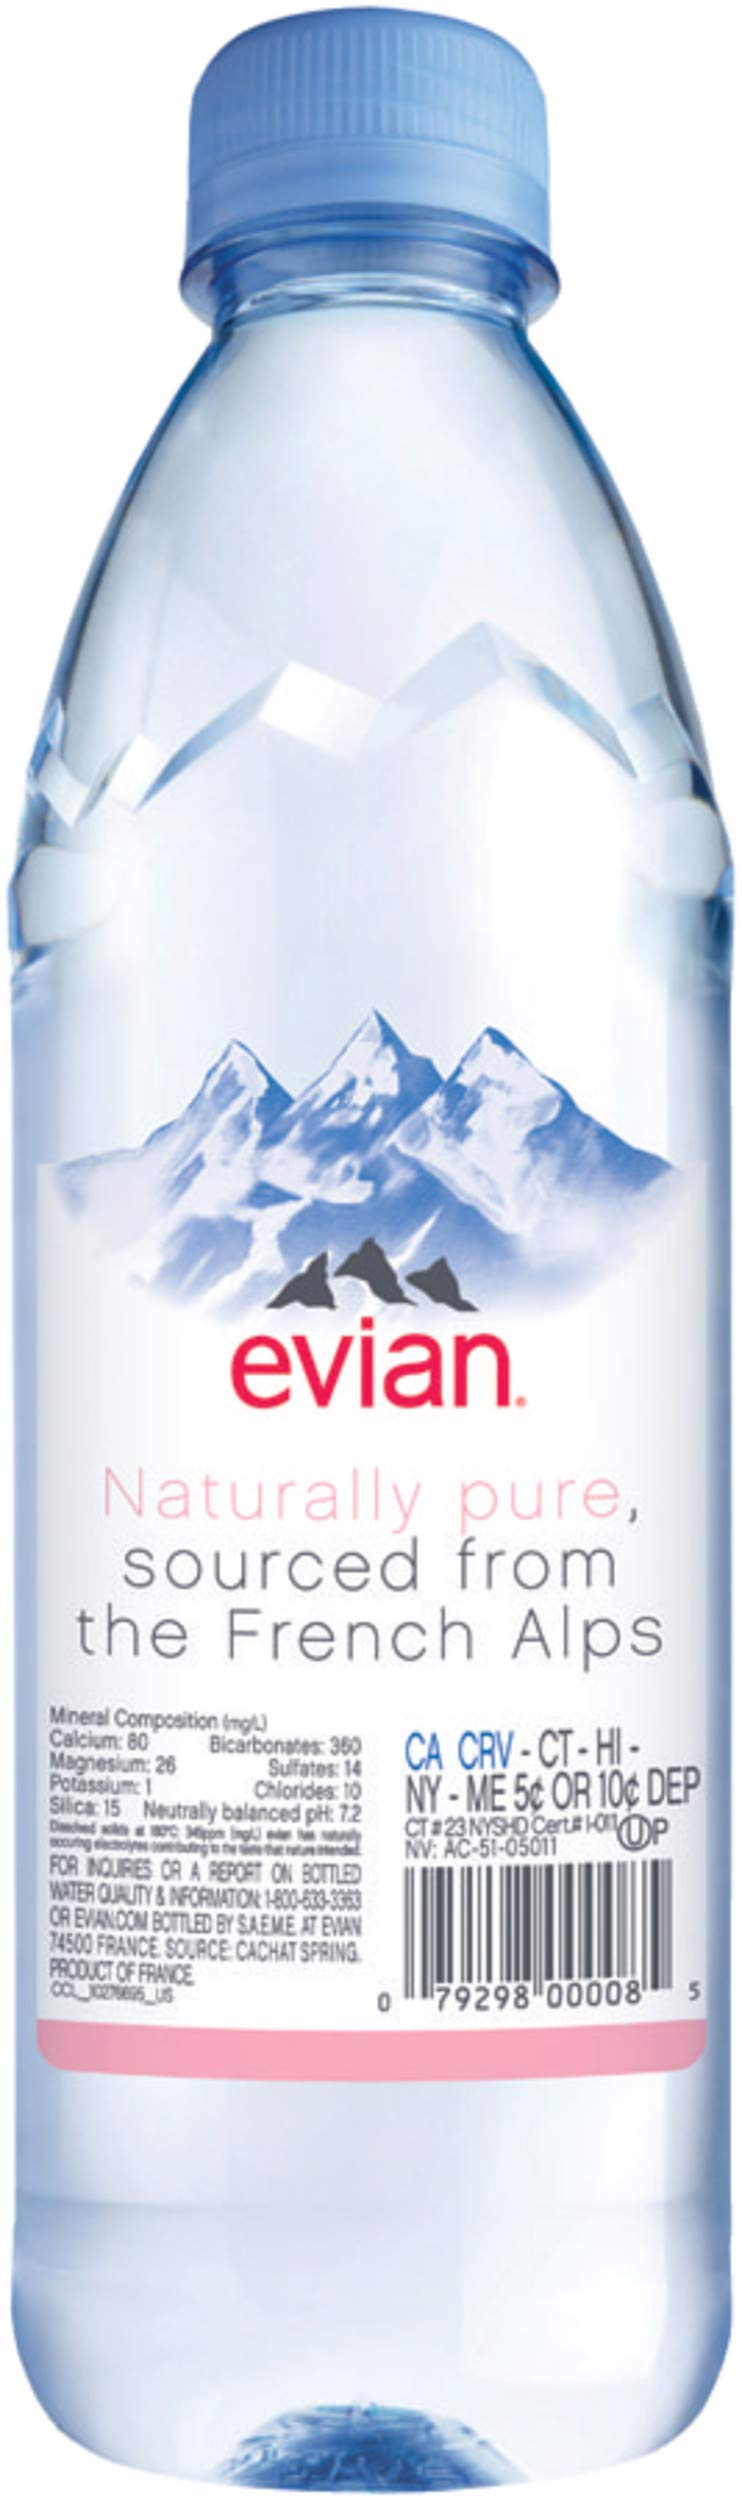 evian Natural Spring Water Bottles, Naturally Filtered Spring Water in Individual-Sized Plastic Bottles, 16.9 Fl Oz, Pack of 24 by evian (Image #4)